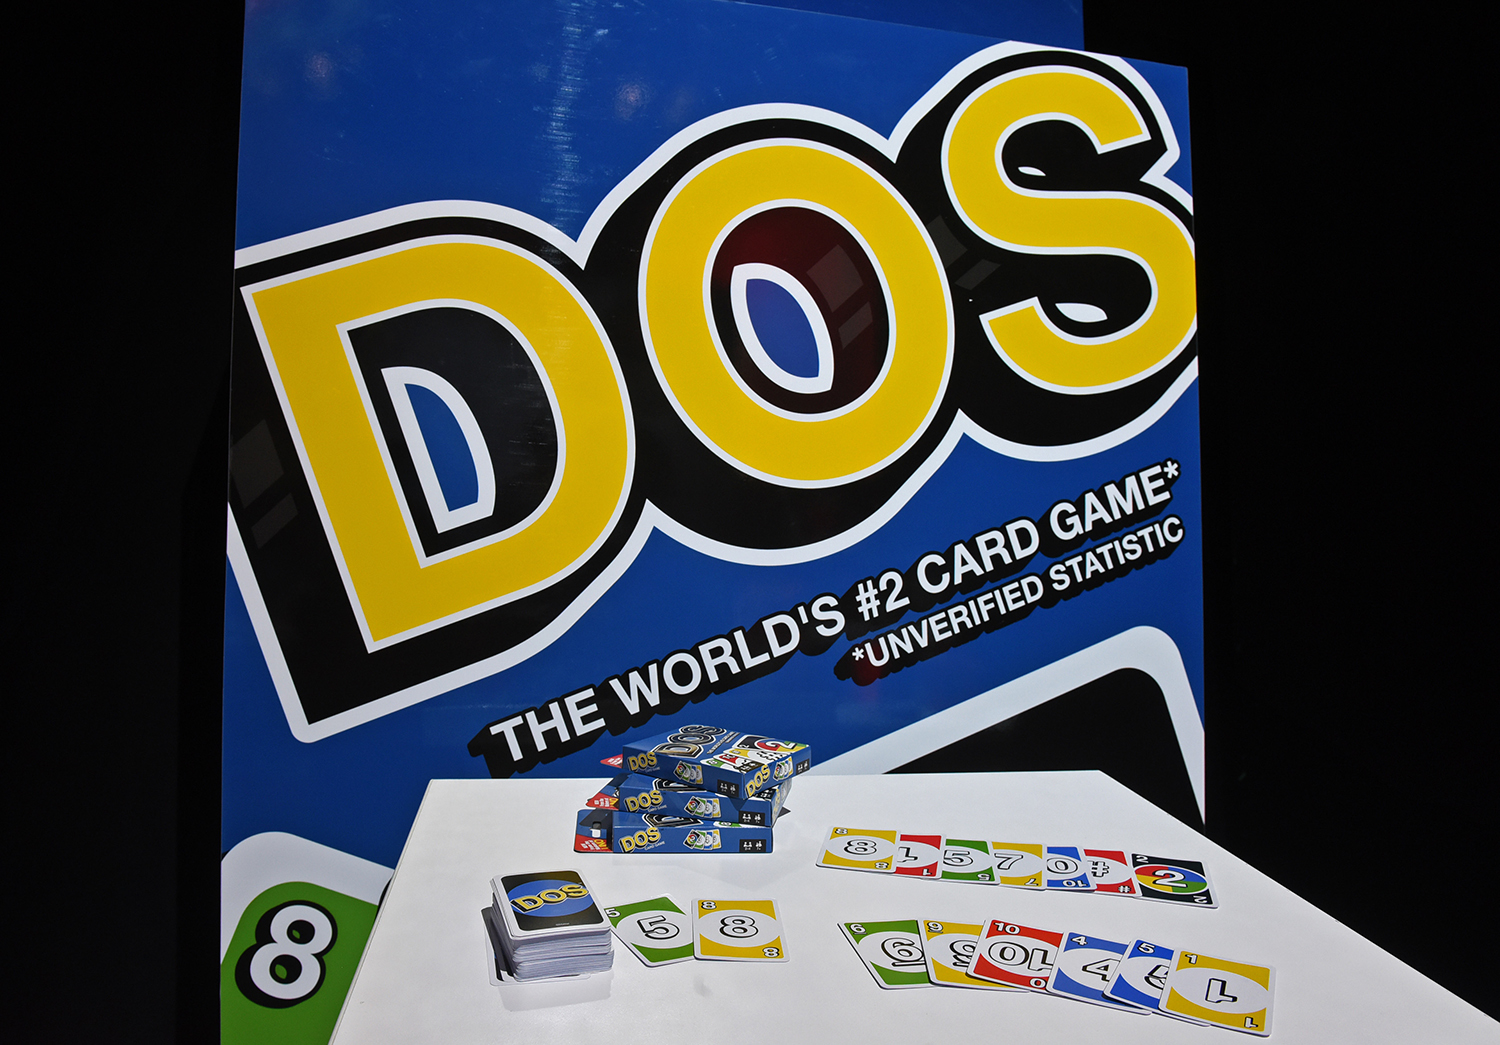 <div class='meta'><div class='origin-logo' data-origin='AP'></div><span class='caption-text' data-credit='Diane Bondareff/AP Images for Mattel'>In the new game Dos, inspired by the number one card game UNO, players must yell &#34;Dos&#34; when they are down to two cards to win.</span></div>